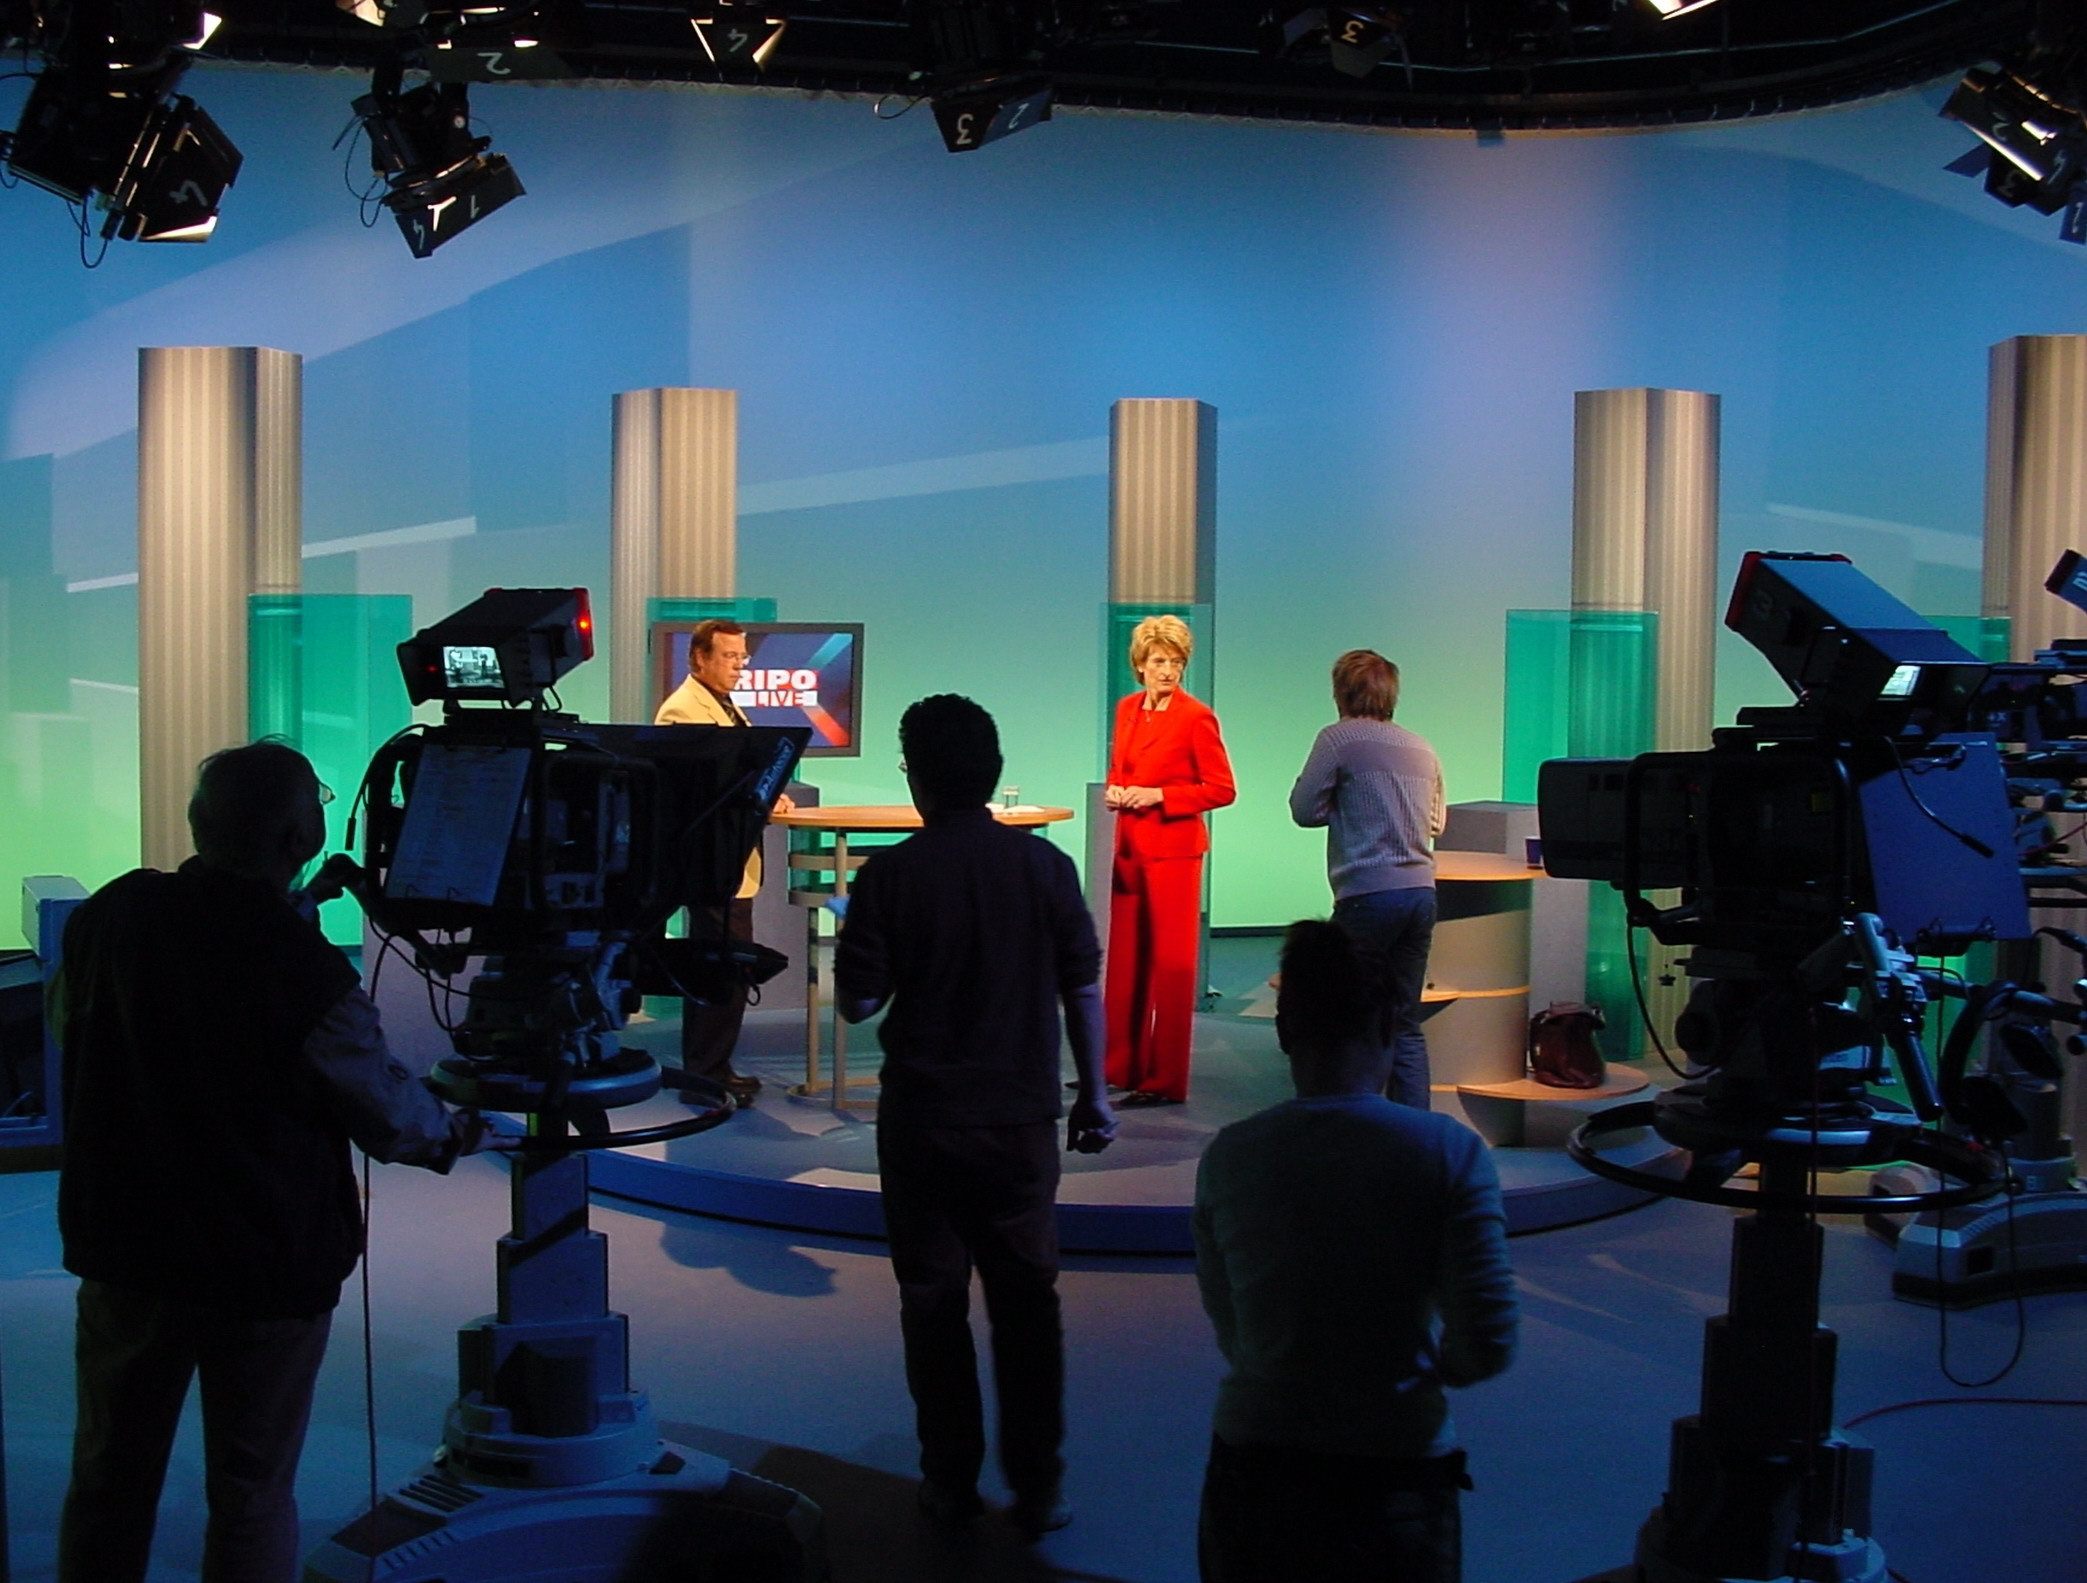 During a production of Kripo Live in Studio 1 of the Mitteldeutscher Rundfunk (MDR) (2005).